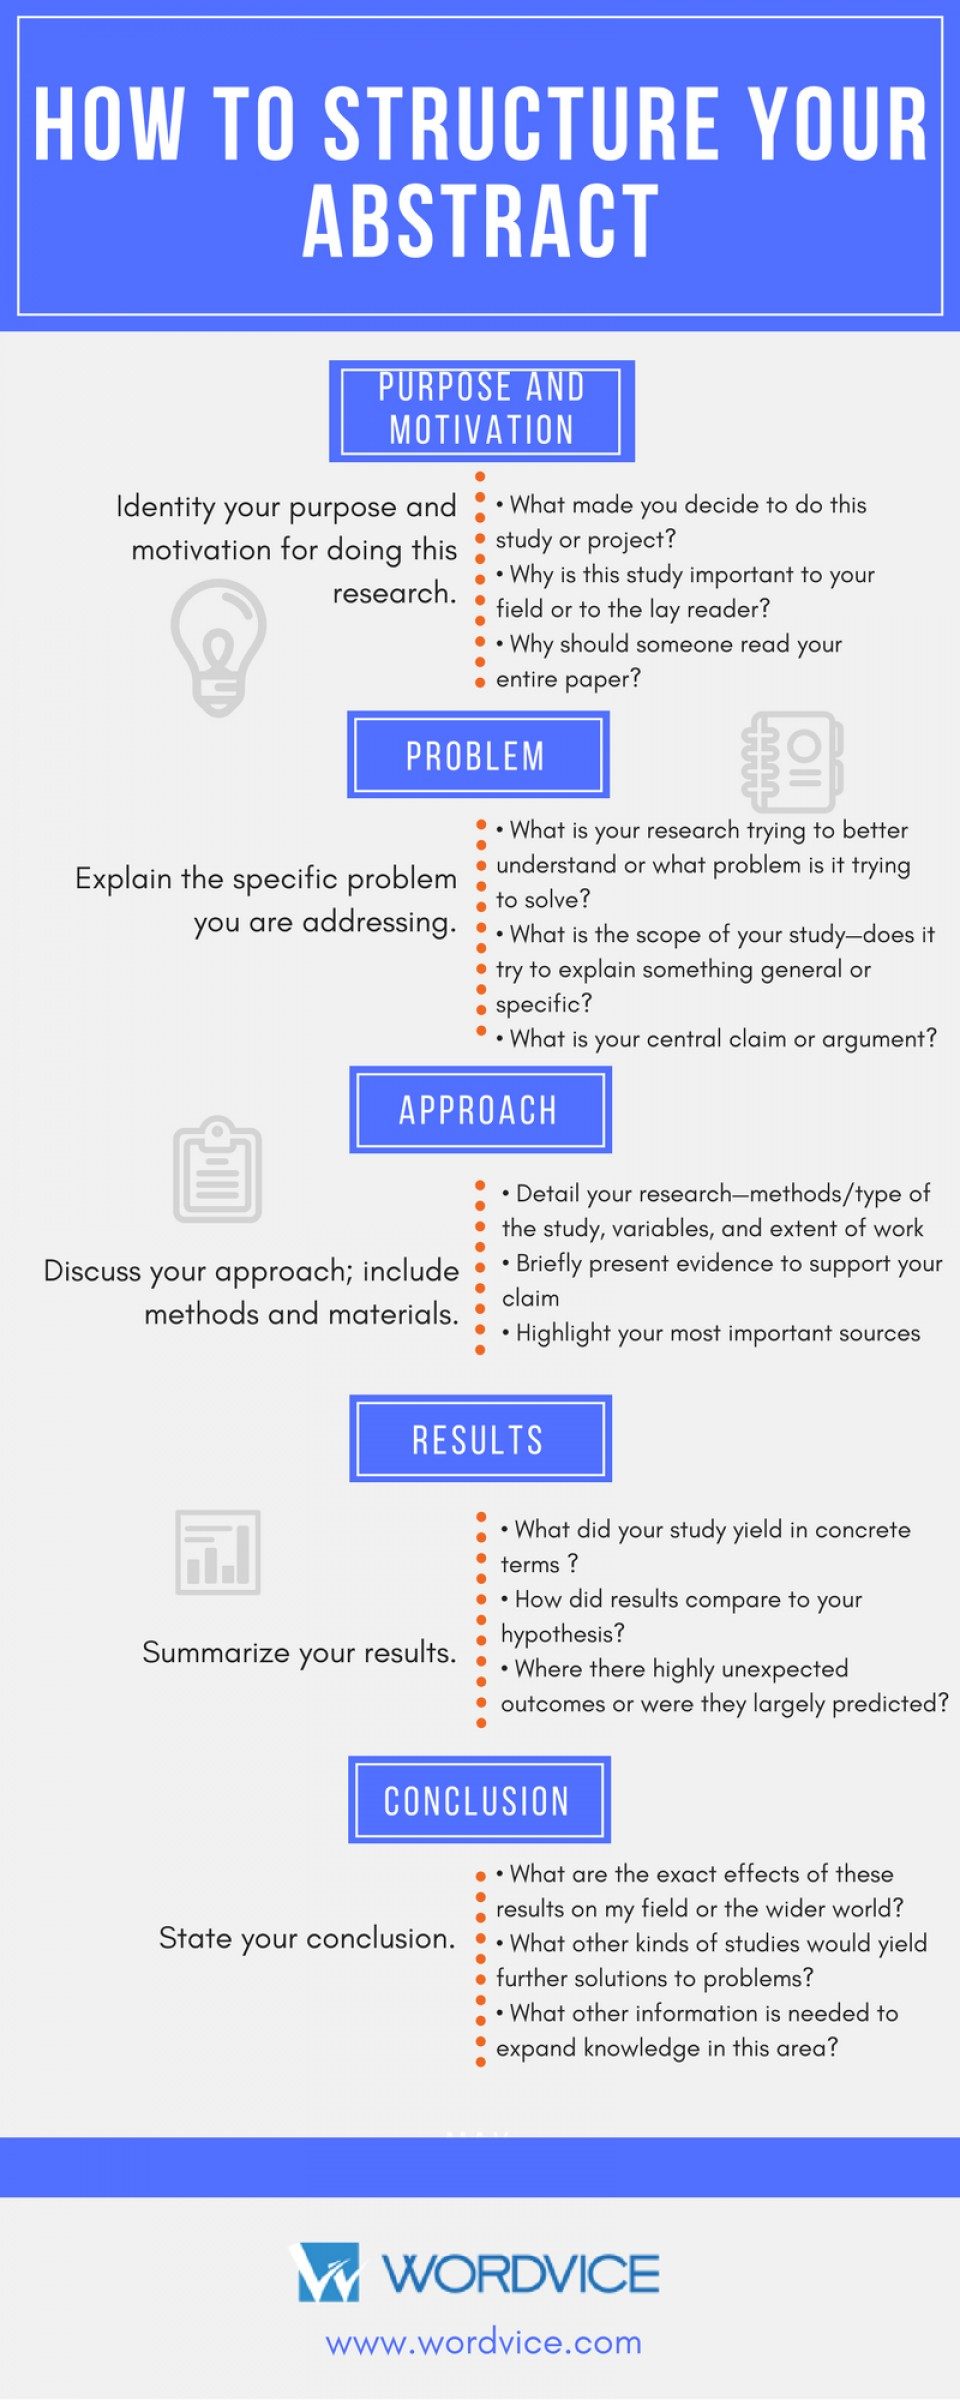 003 Research Paper Abstract How To Structure Your Unusual Format Introduction Writing Sample Pdf 960